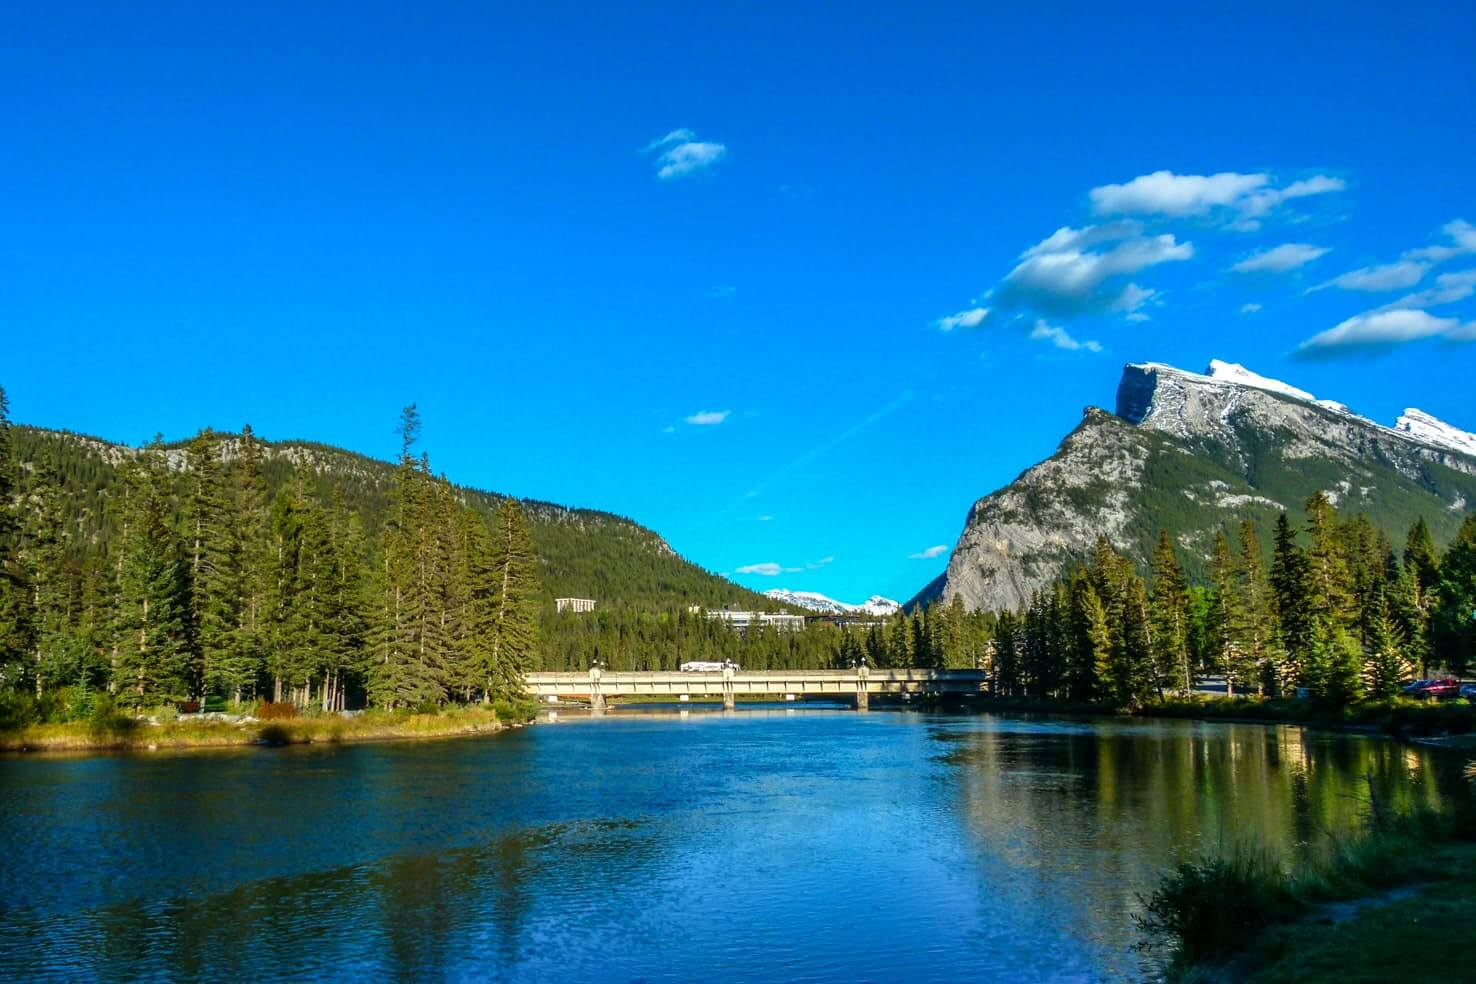 100 best things to do in Banff National Park, Canada - Walk along Bow River